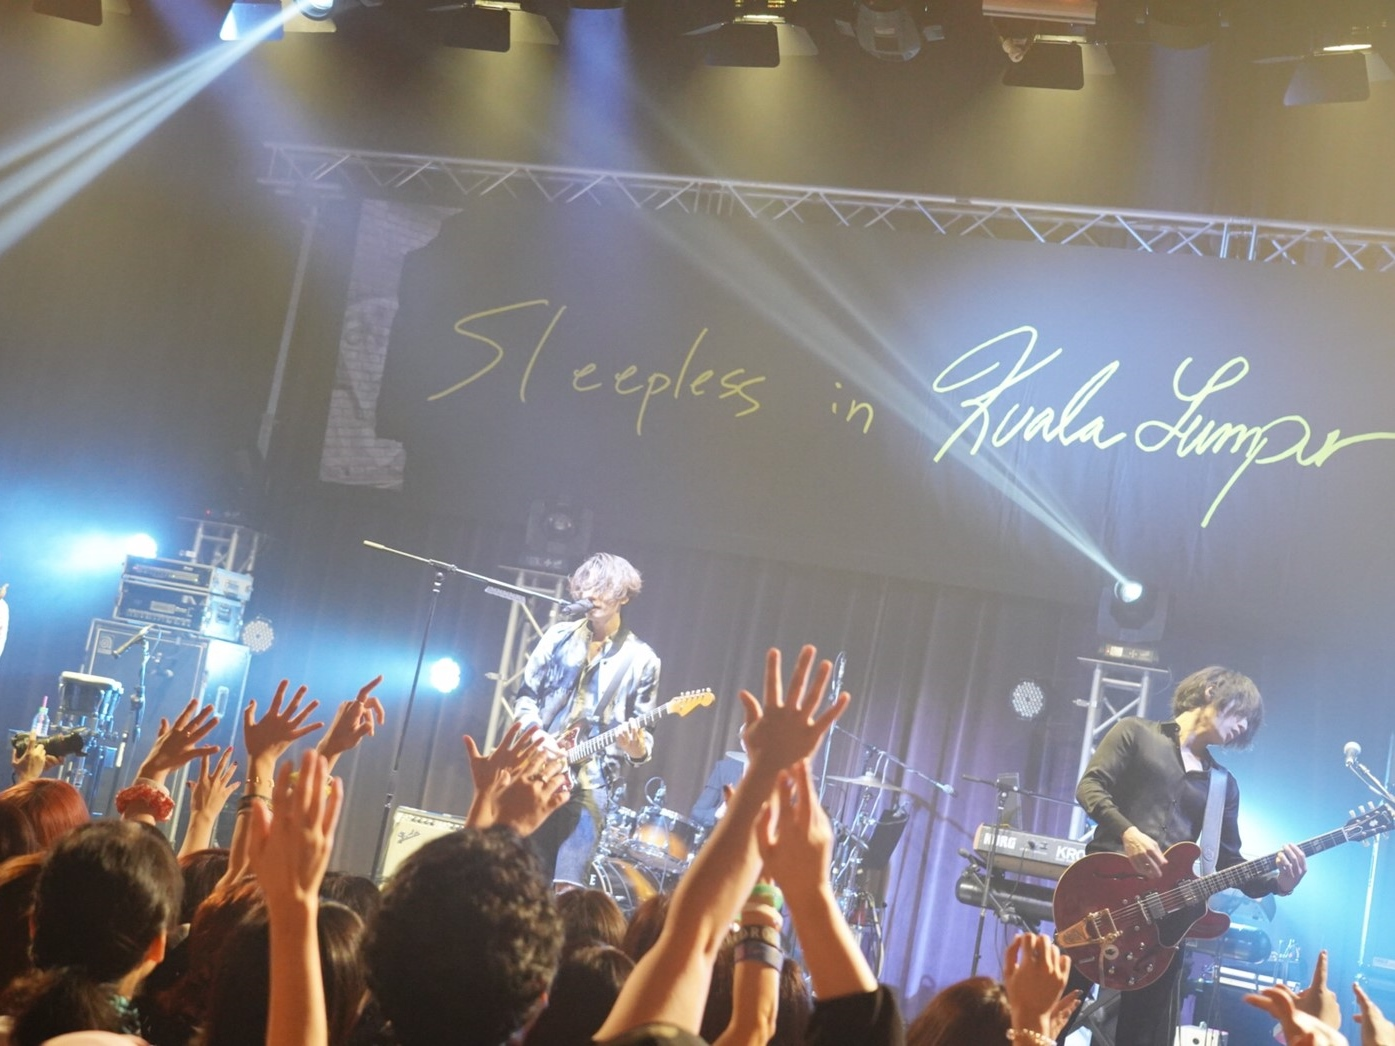 [ALEXANDROS] made good on their promise to return to KL